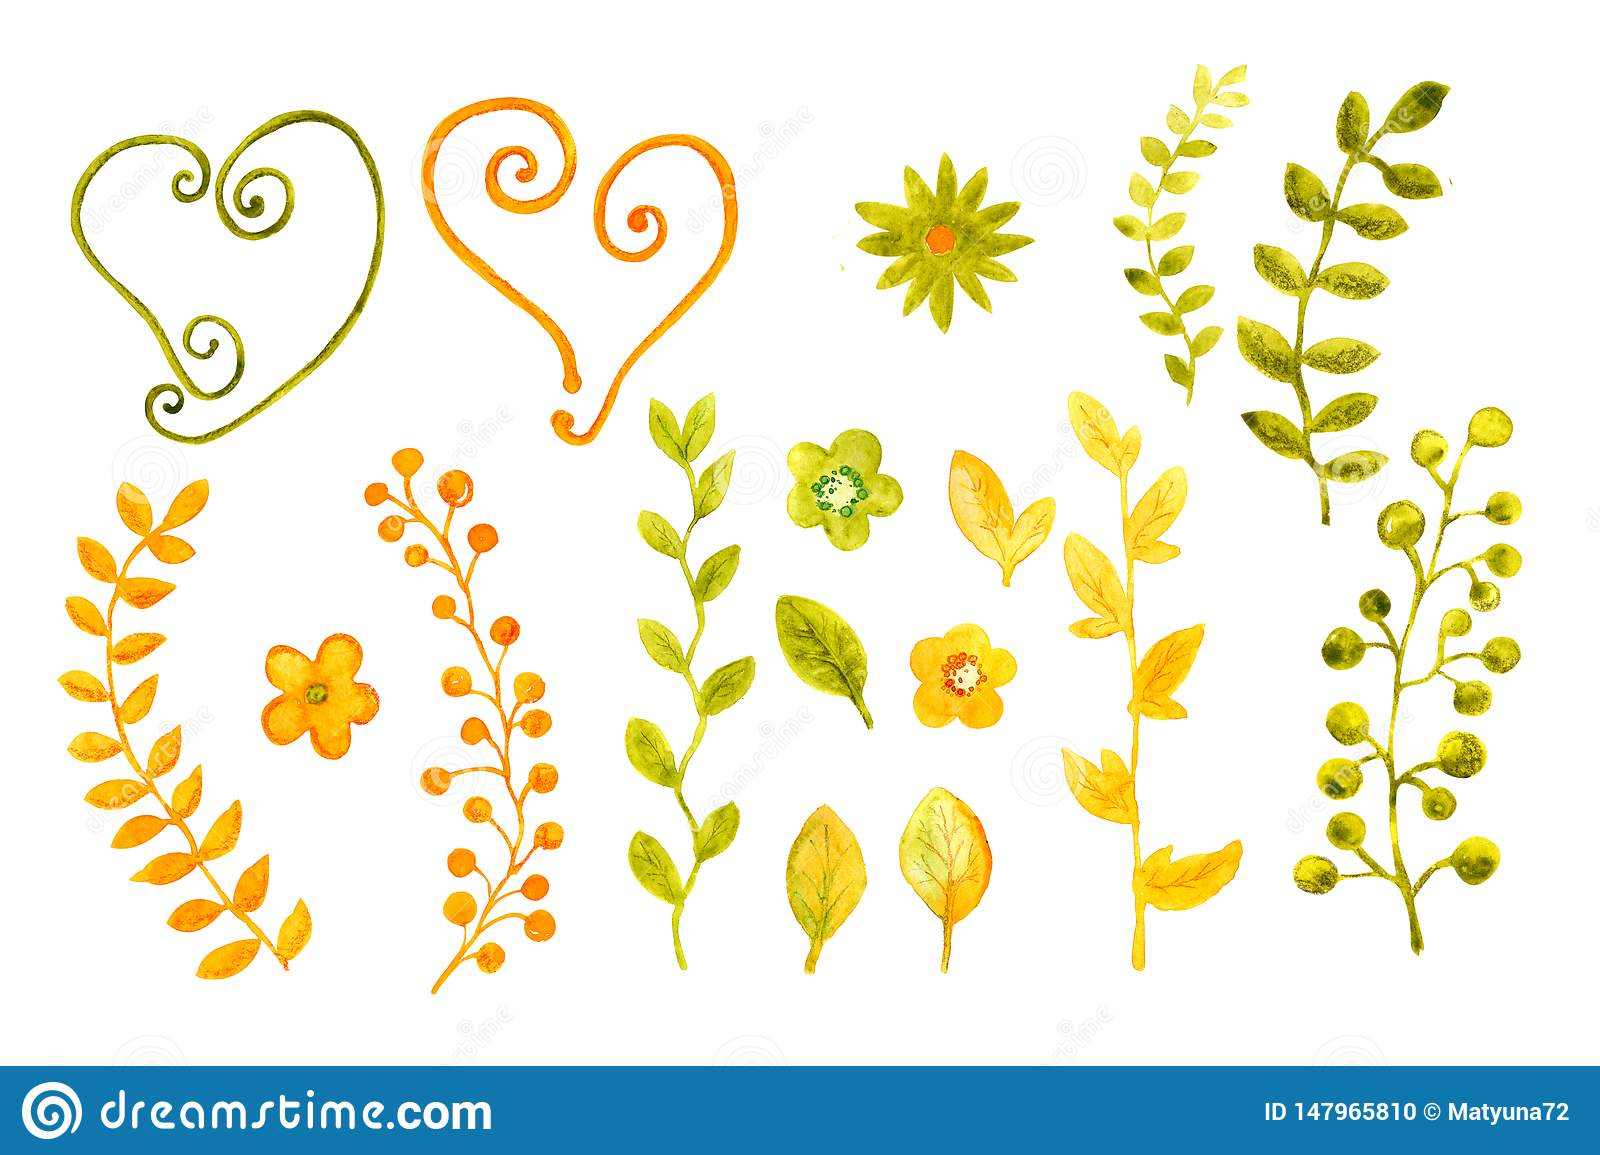 Collection of watercolors of flowers and leaves. For cover design, packaging, backgrounds